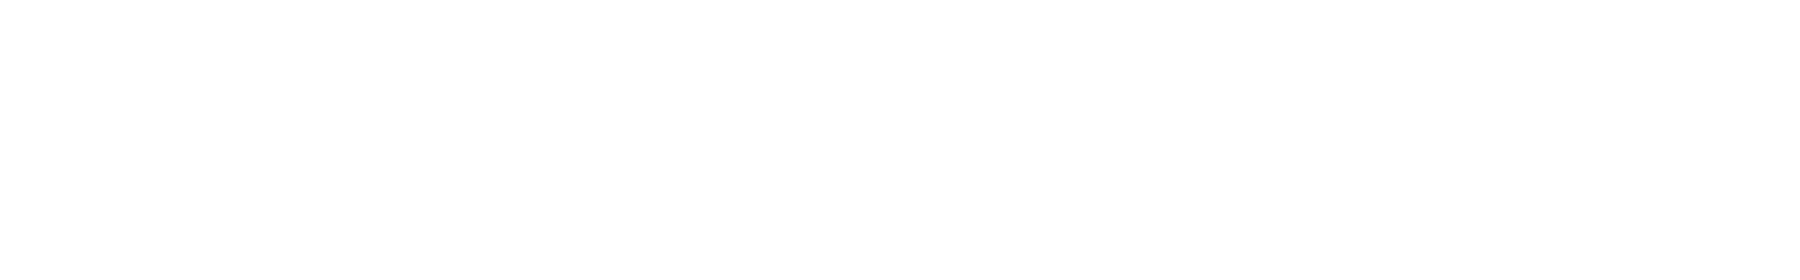 veh1 cutted sounds   156